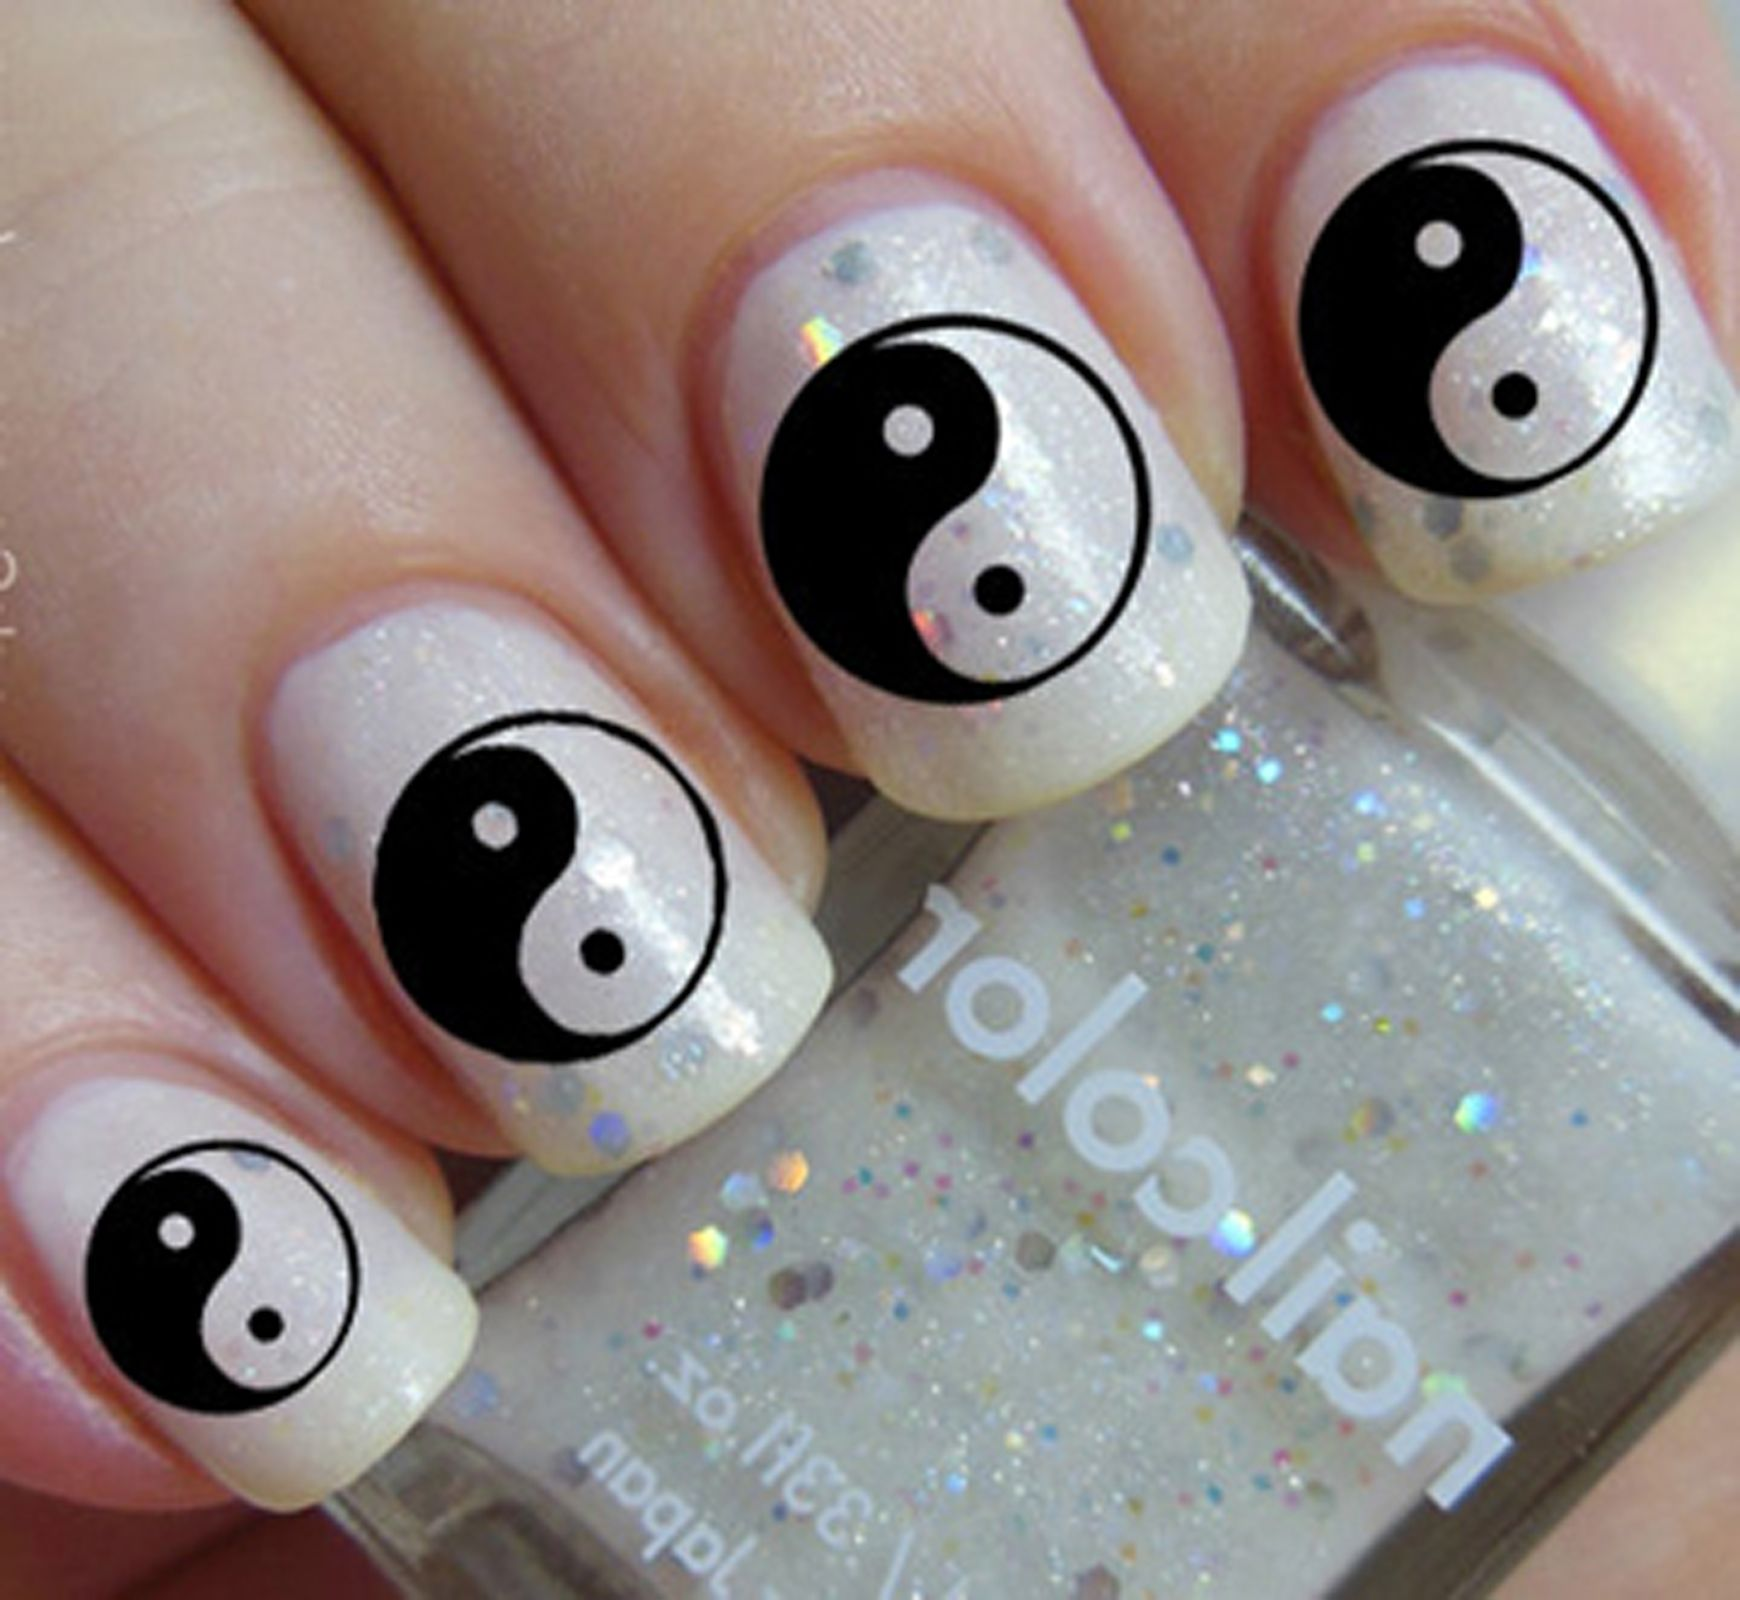 YIN YANG Nail Art Decals - Clear and Black (YYC)